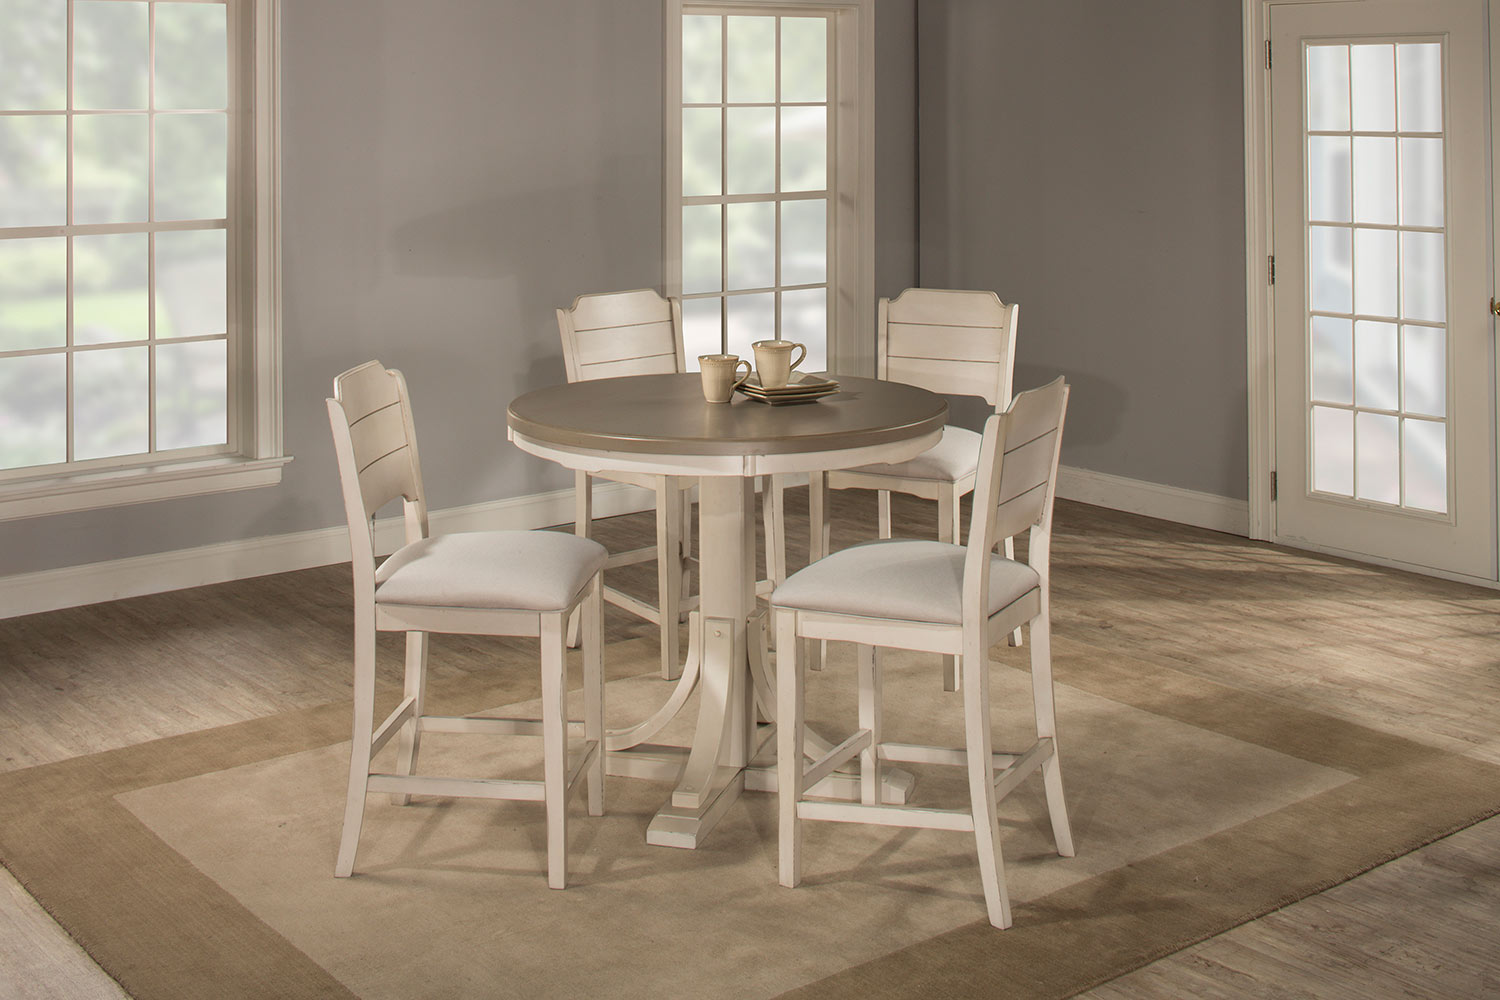 Hillsdale Clarion 5-Piece Round Counter Height Dining Set with Open Back Stools - Gray/White